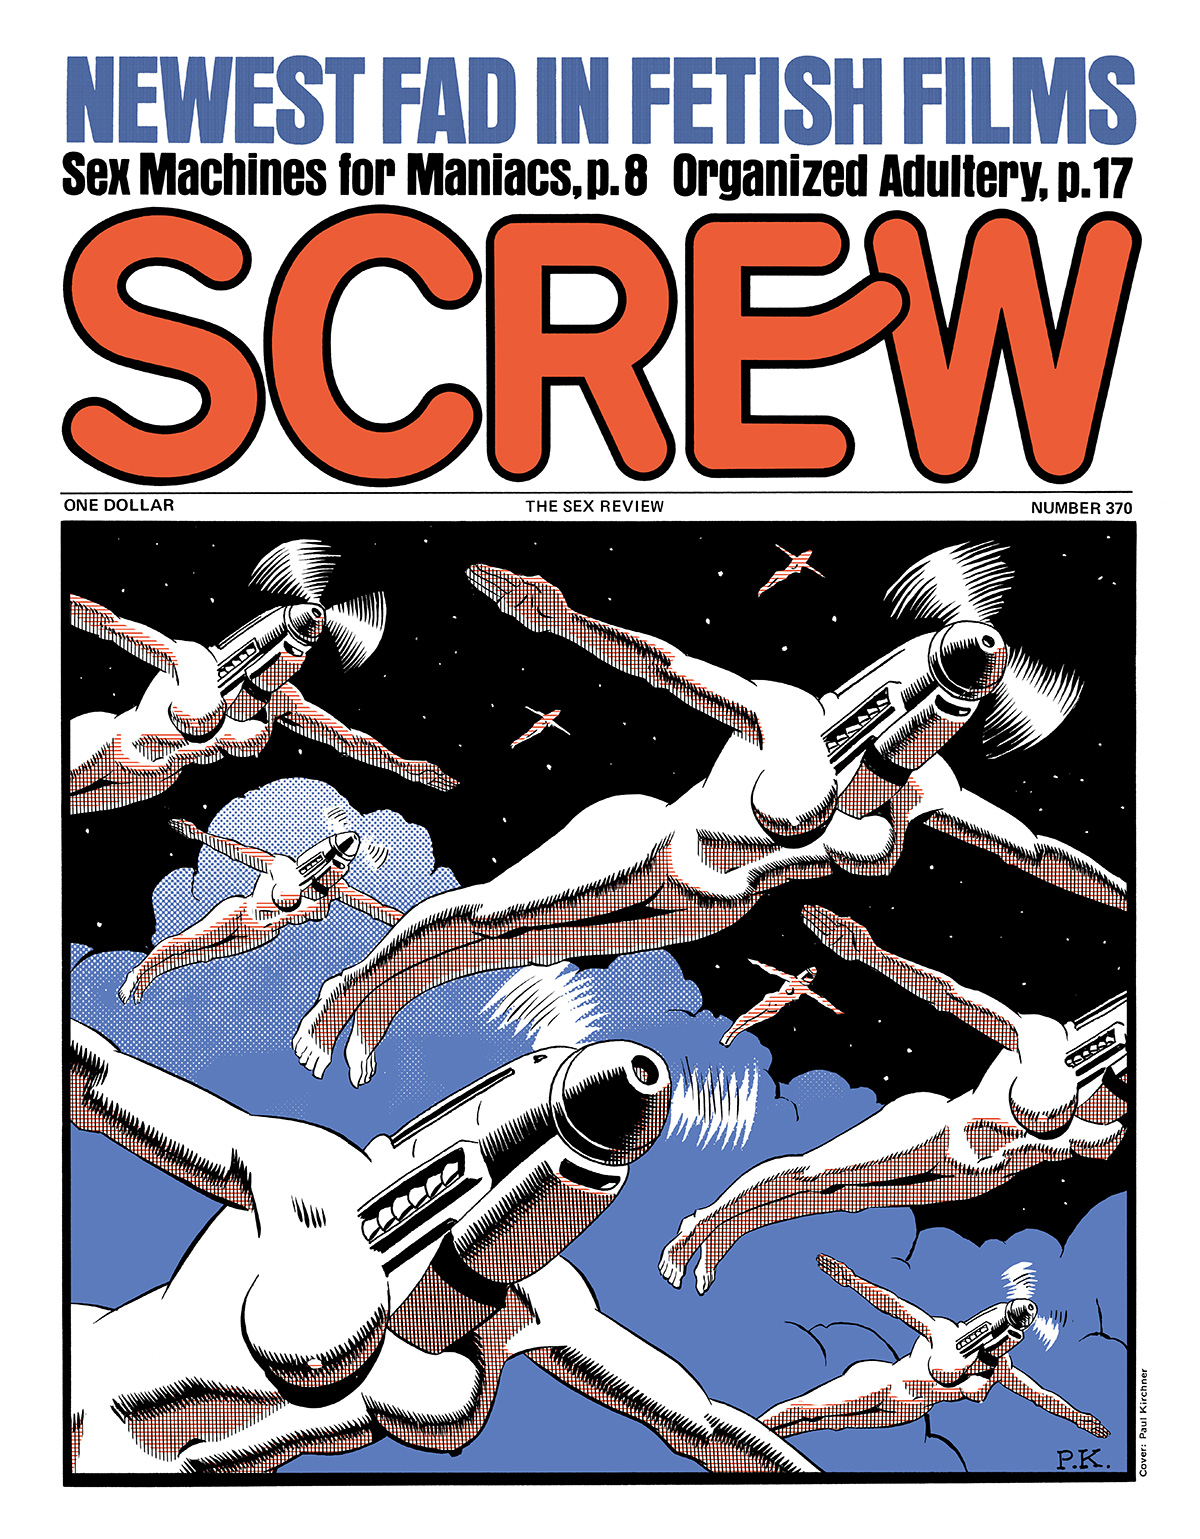 Screw magazine, par Paul Kirchner